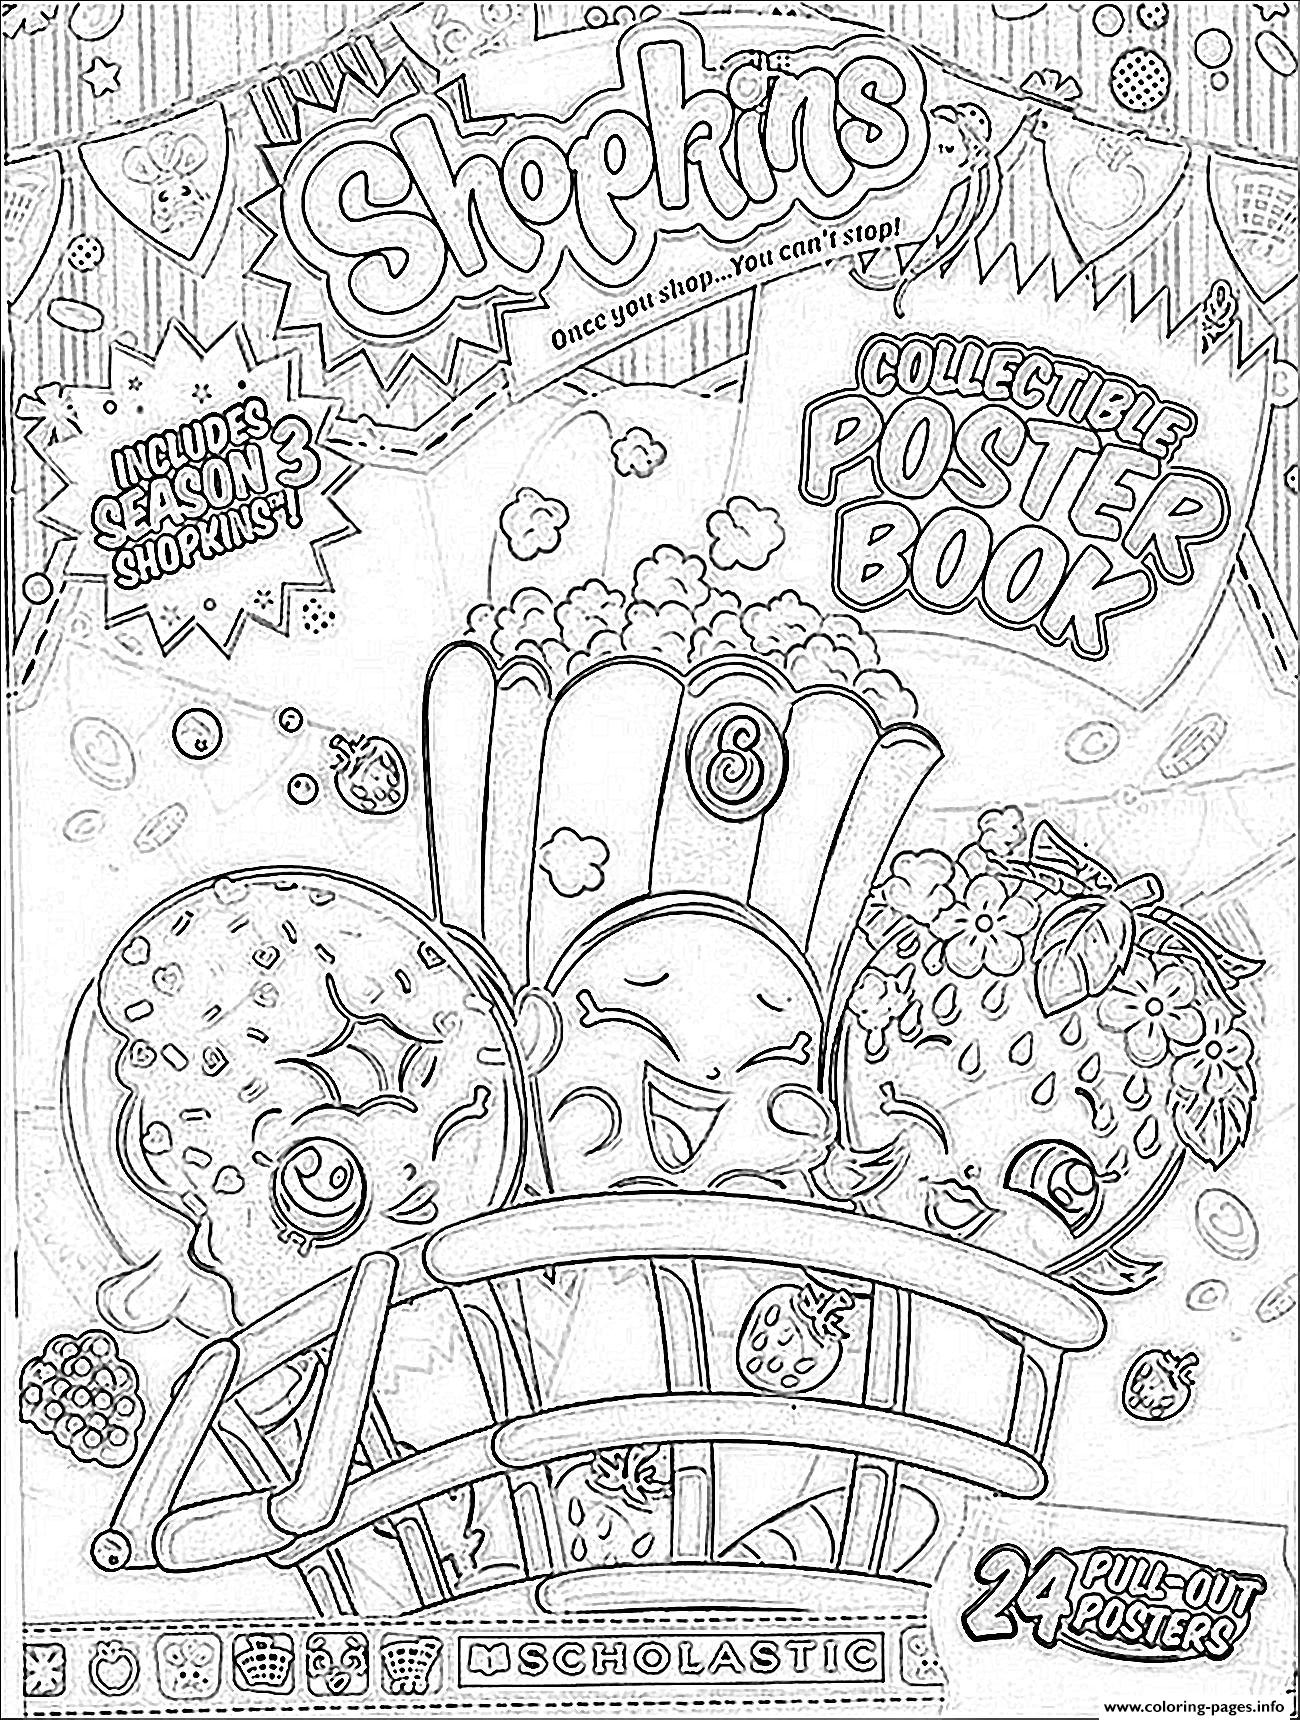 Shopkins Season 3 Book Coloring Pages